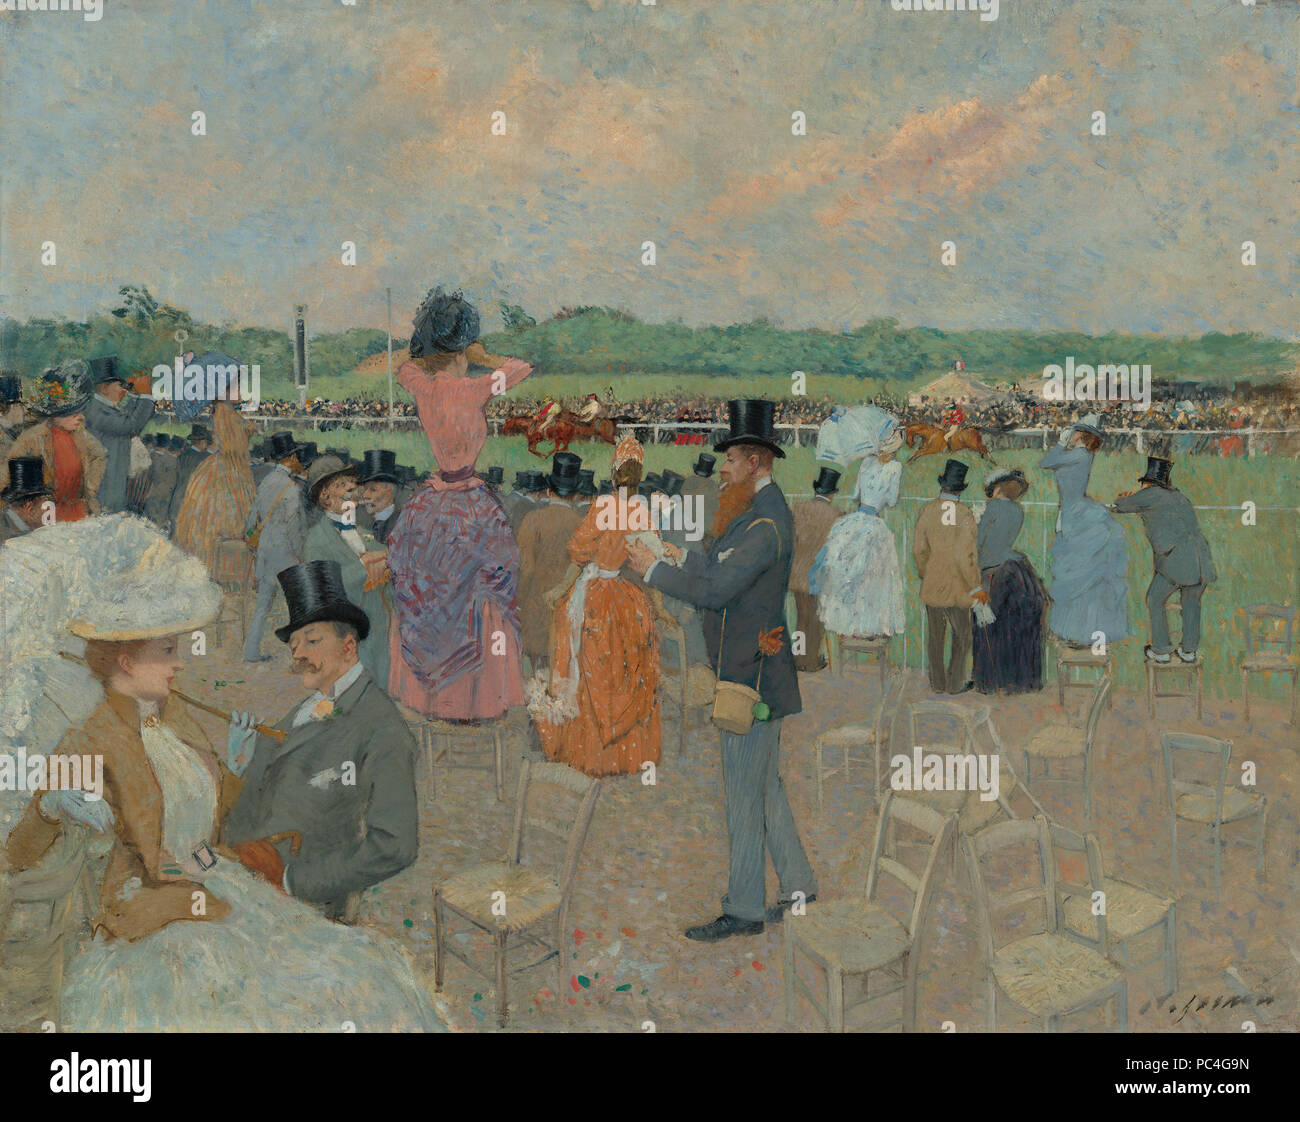 Jean-Louis Forain (French, 1852 - 1931 ), The Races at Longchamp, c. 1891, oil on canvas, Collection of Mr. and Mrs. Paul Mellon 2014.18.62 599 The Races at Longchamp A29524 - Stock Image